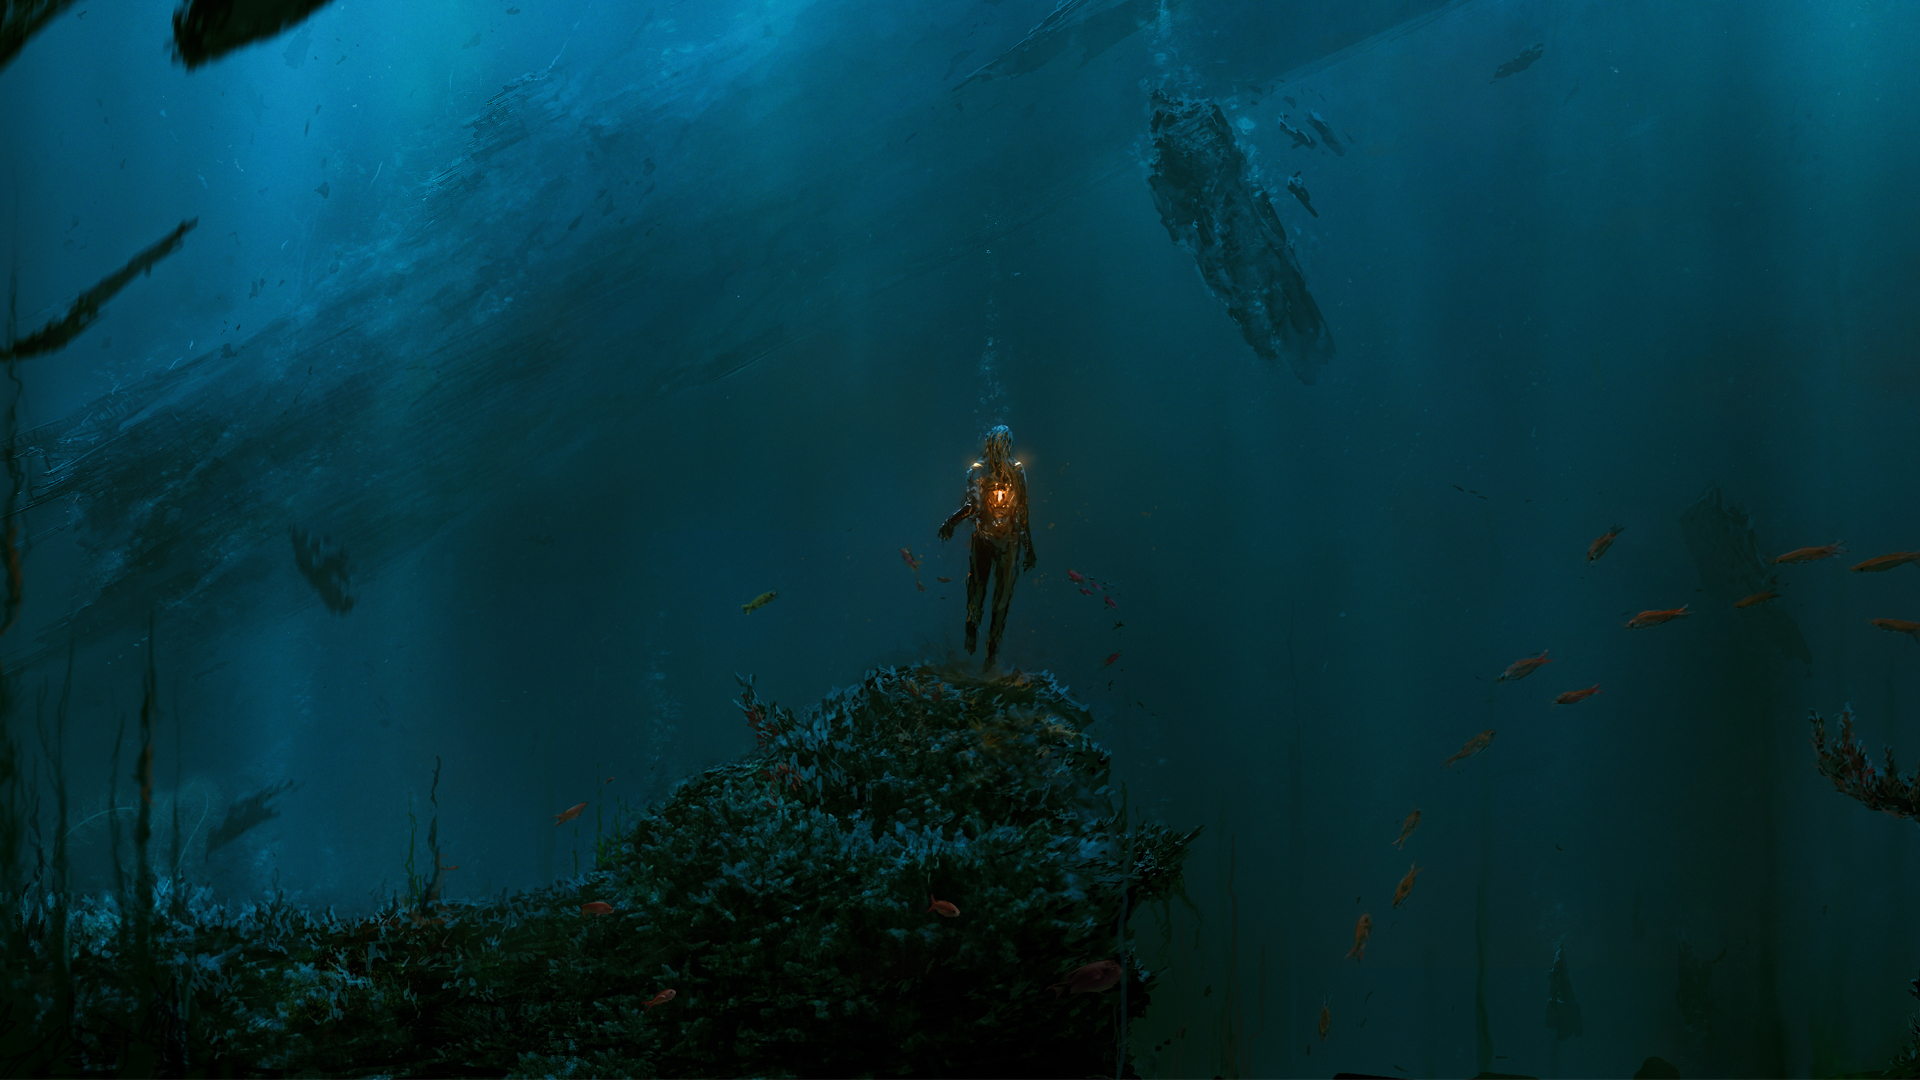 Fantasy - Creature  - Underwater Wallpaper